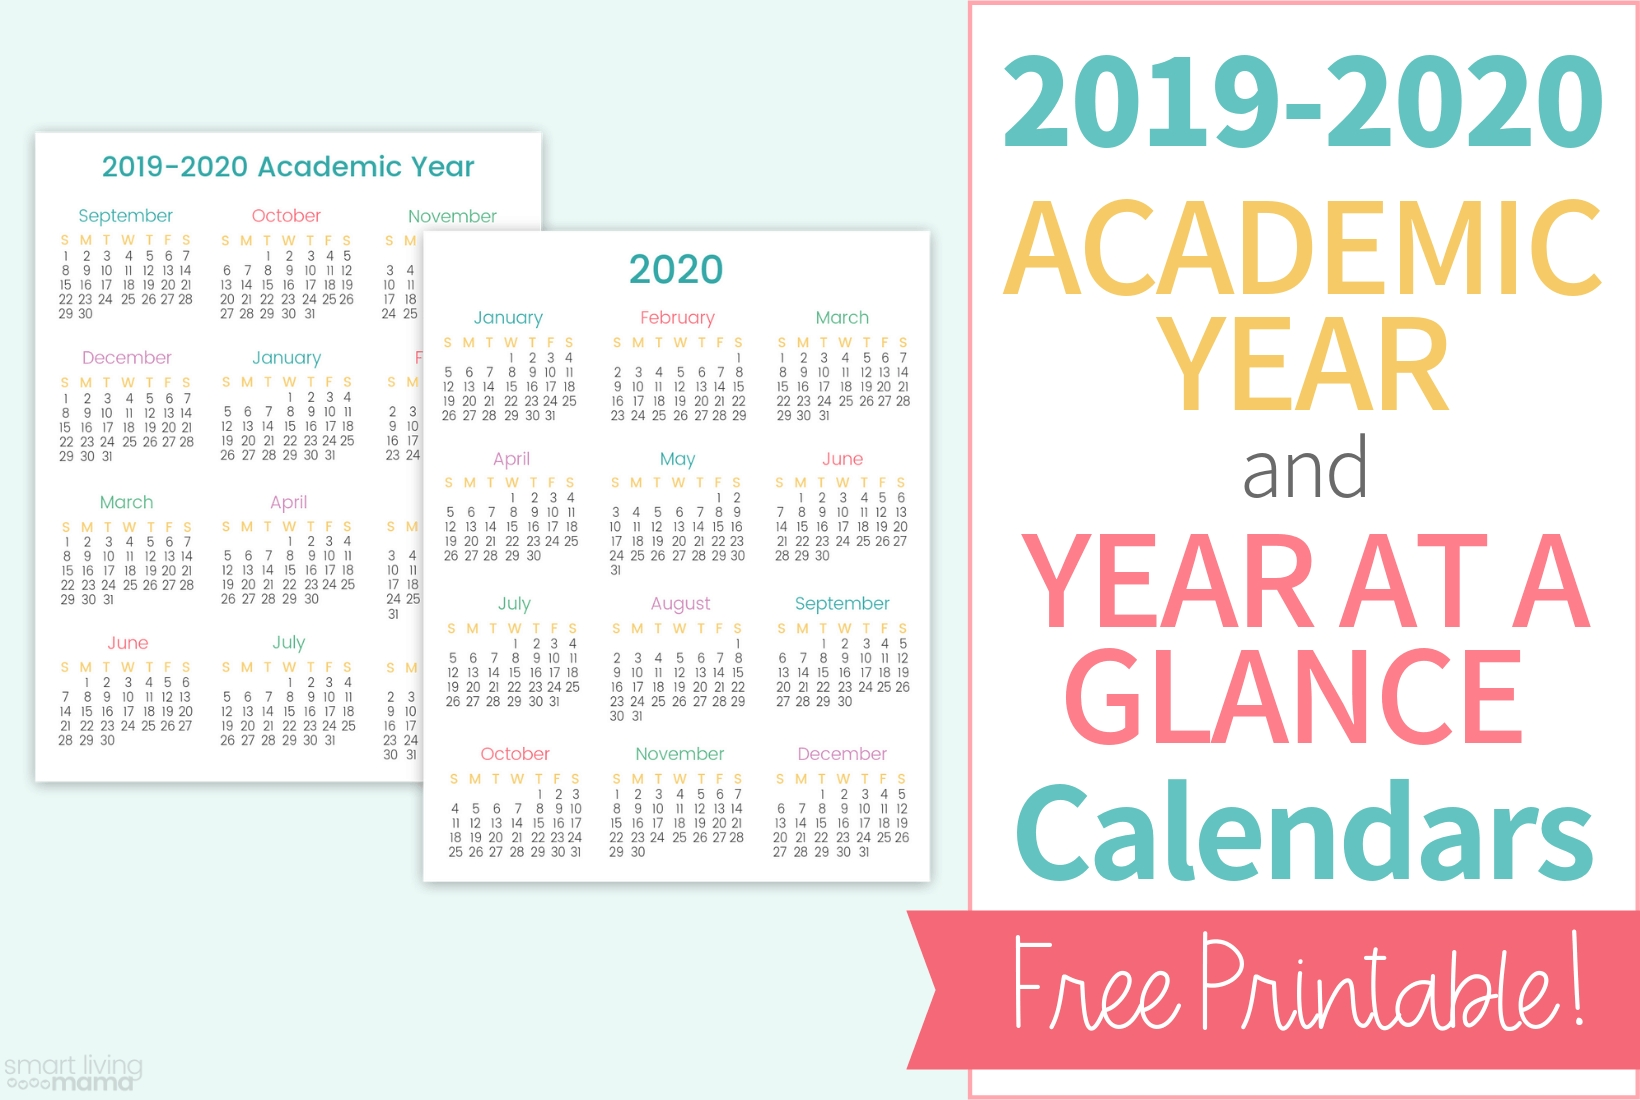 Colorful Printable Calendars For 2019-2020 | Smart Living Mama with regard to Year At A Glance 2019 2020